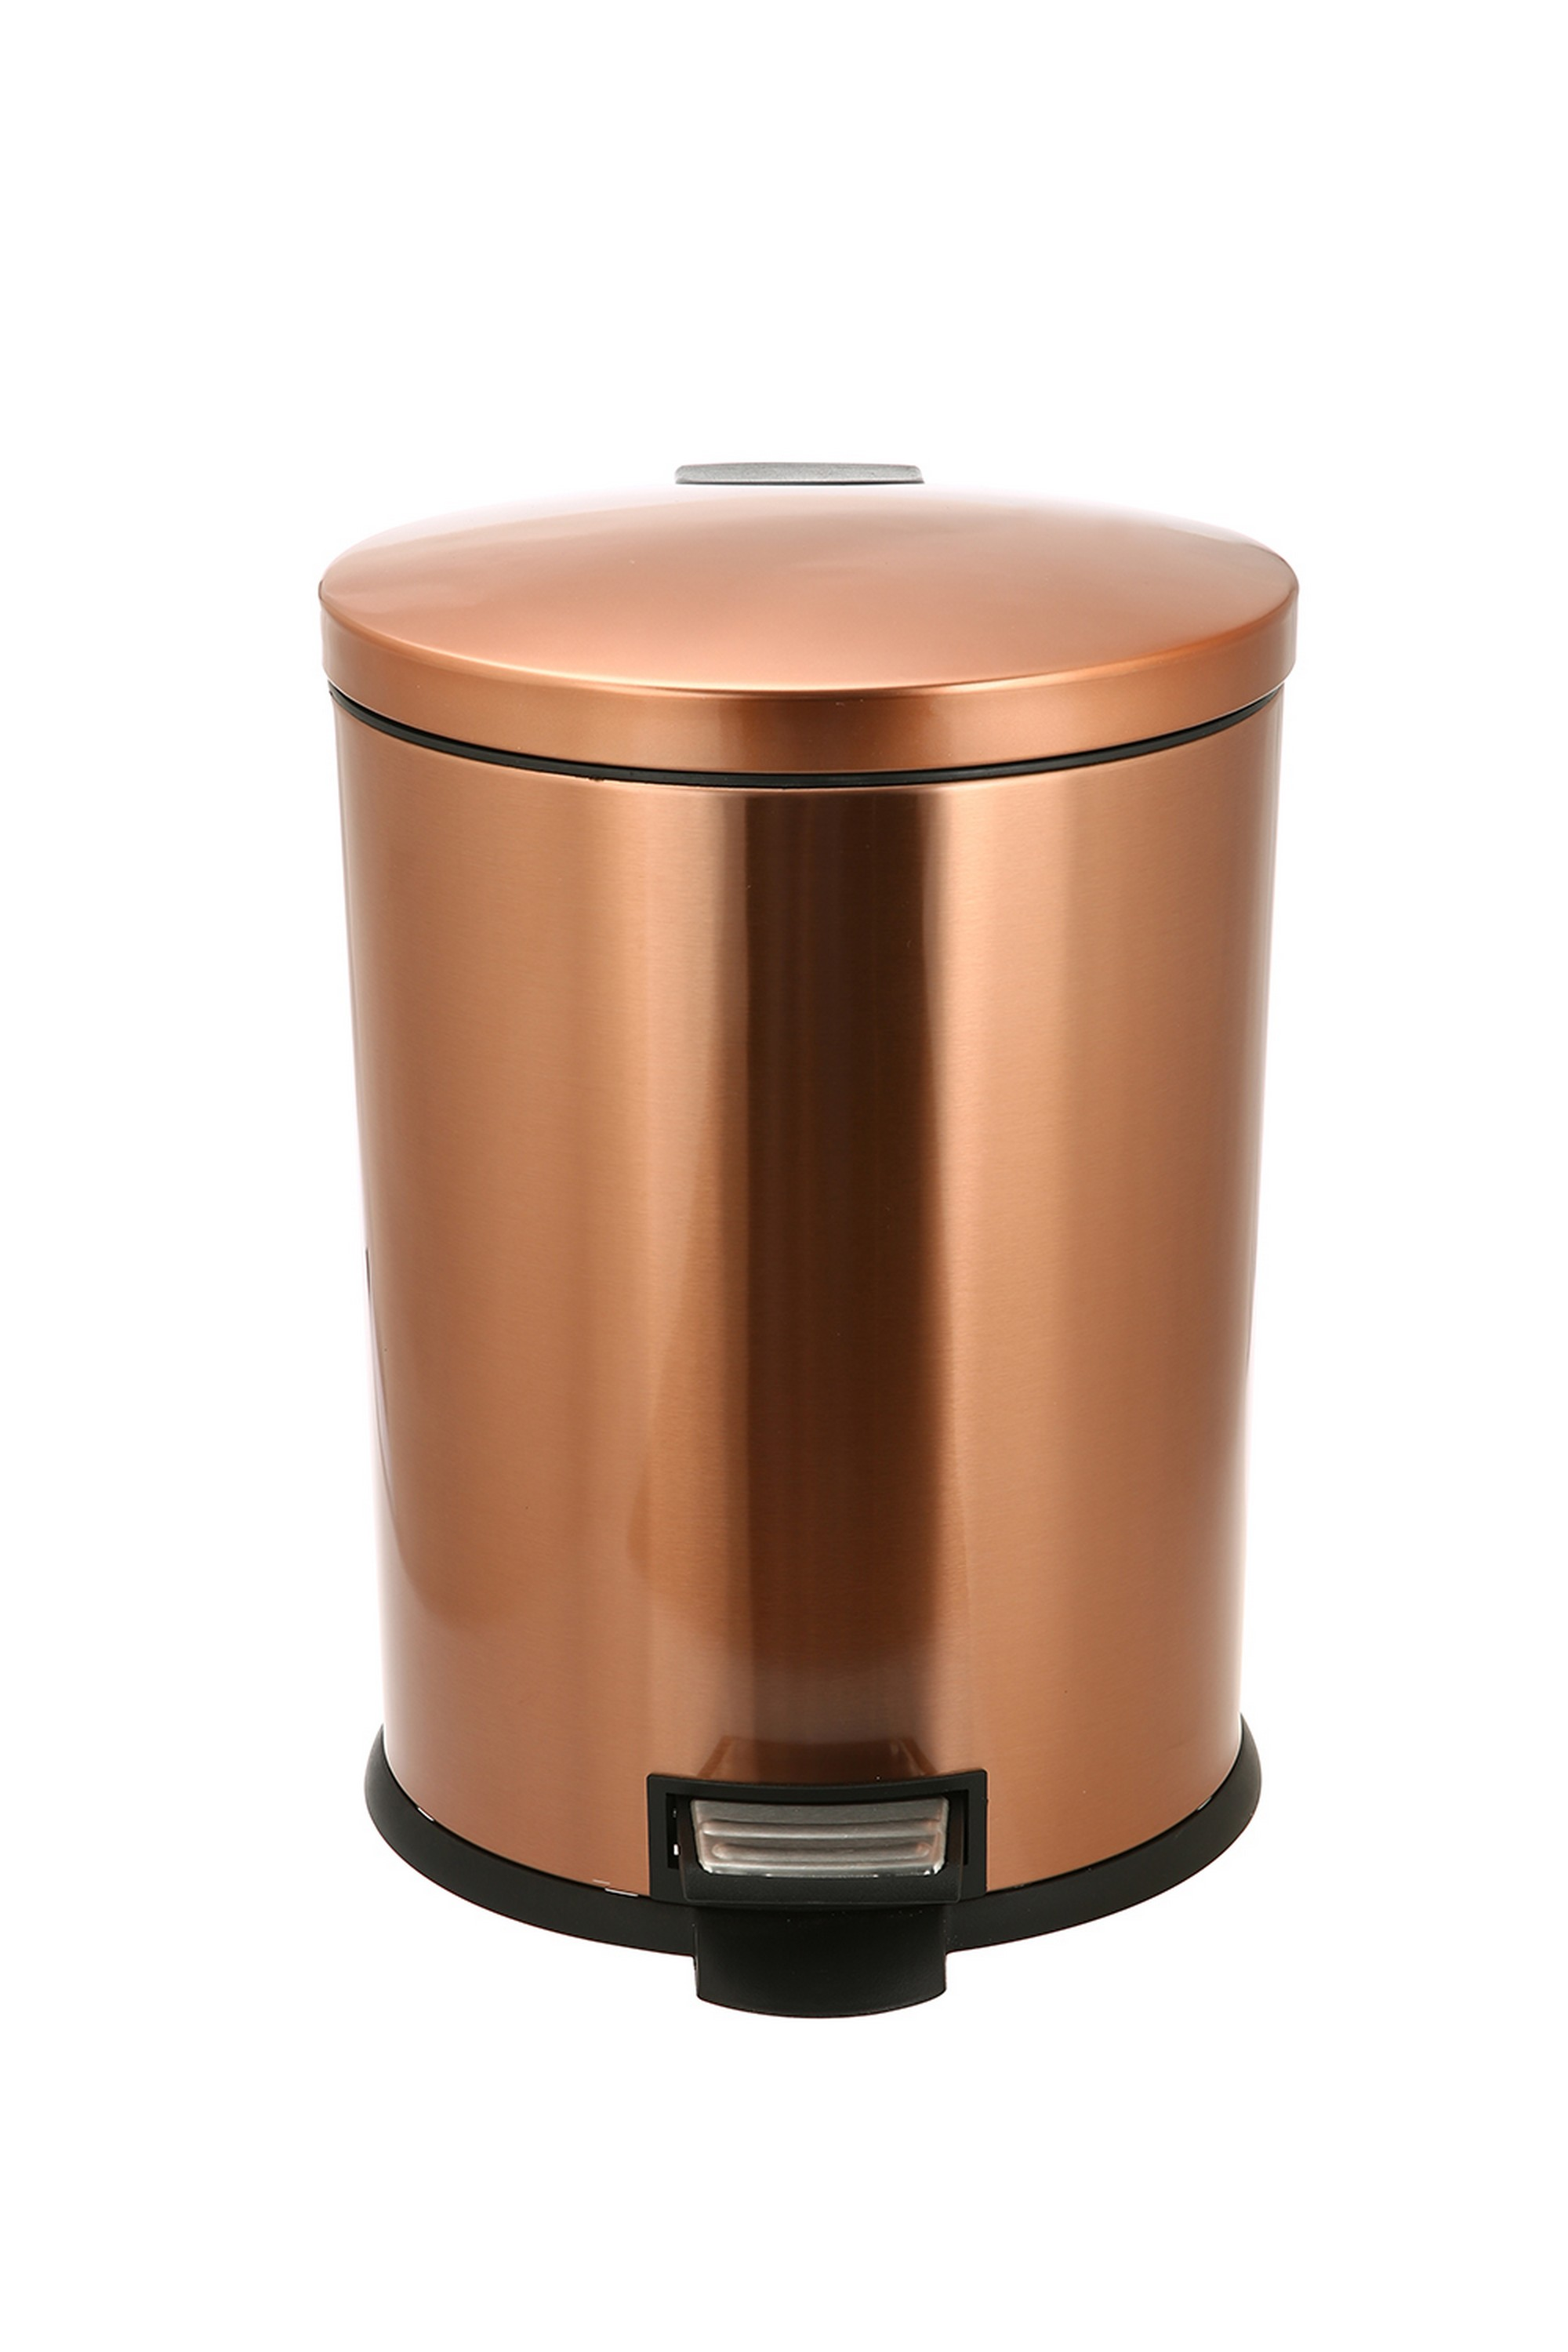 Better homes garden trash waste can 10 5 gal oval copper - Better homes and gardens trash can ...